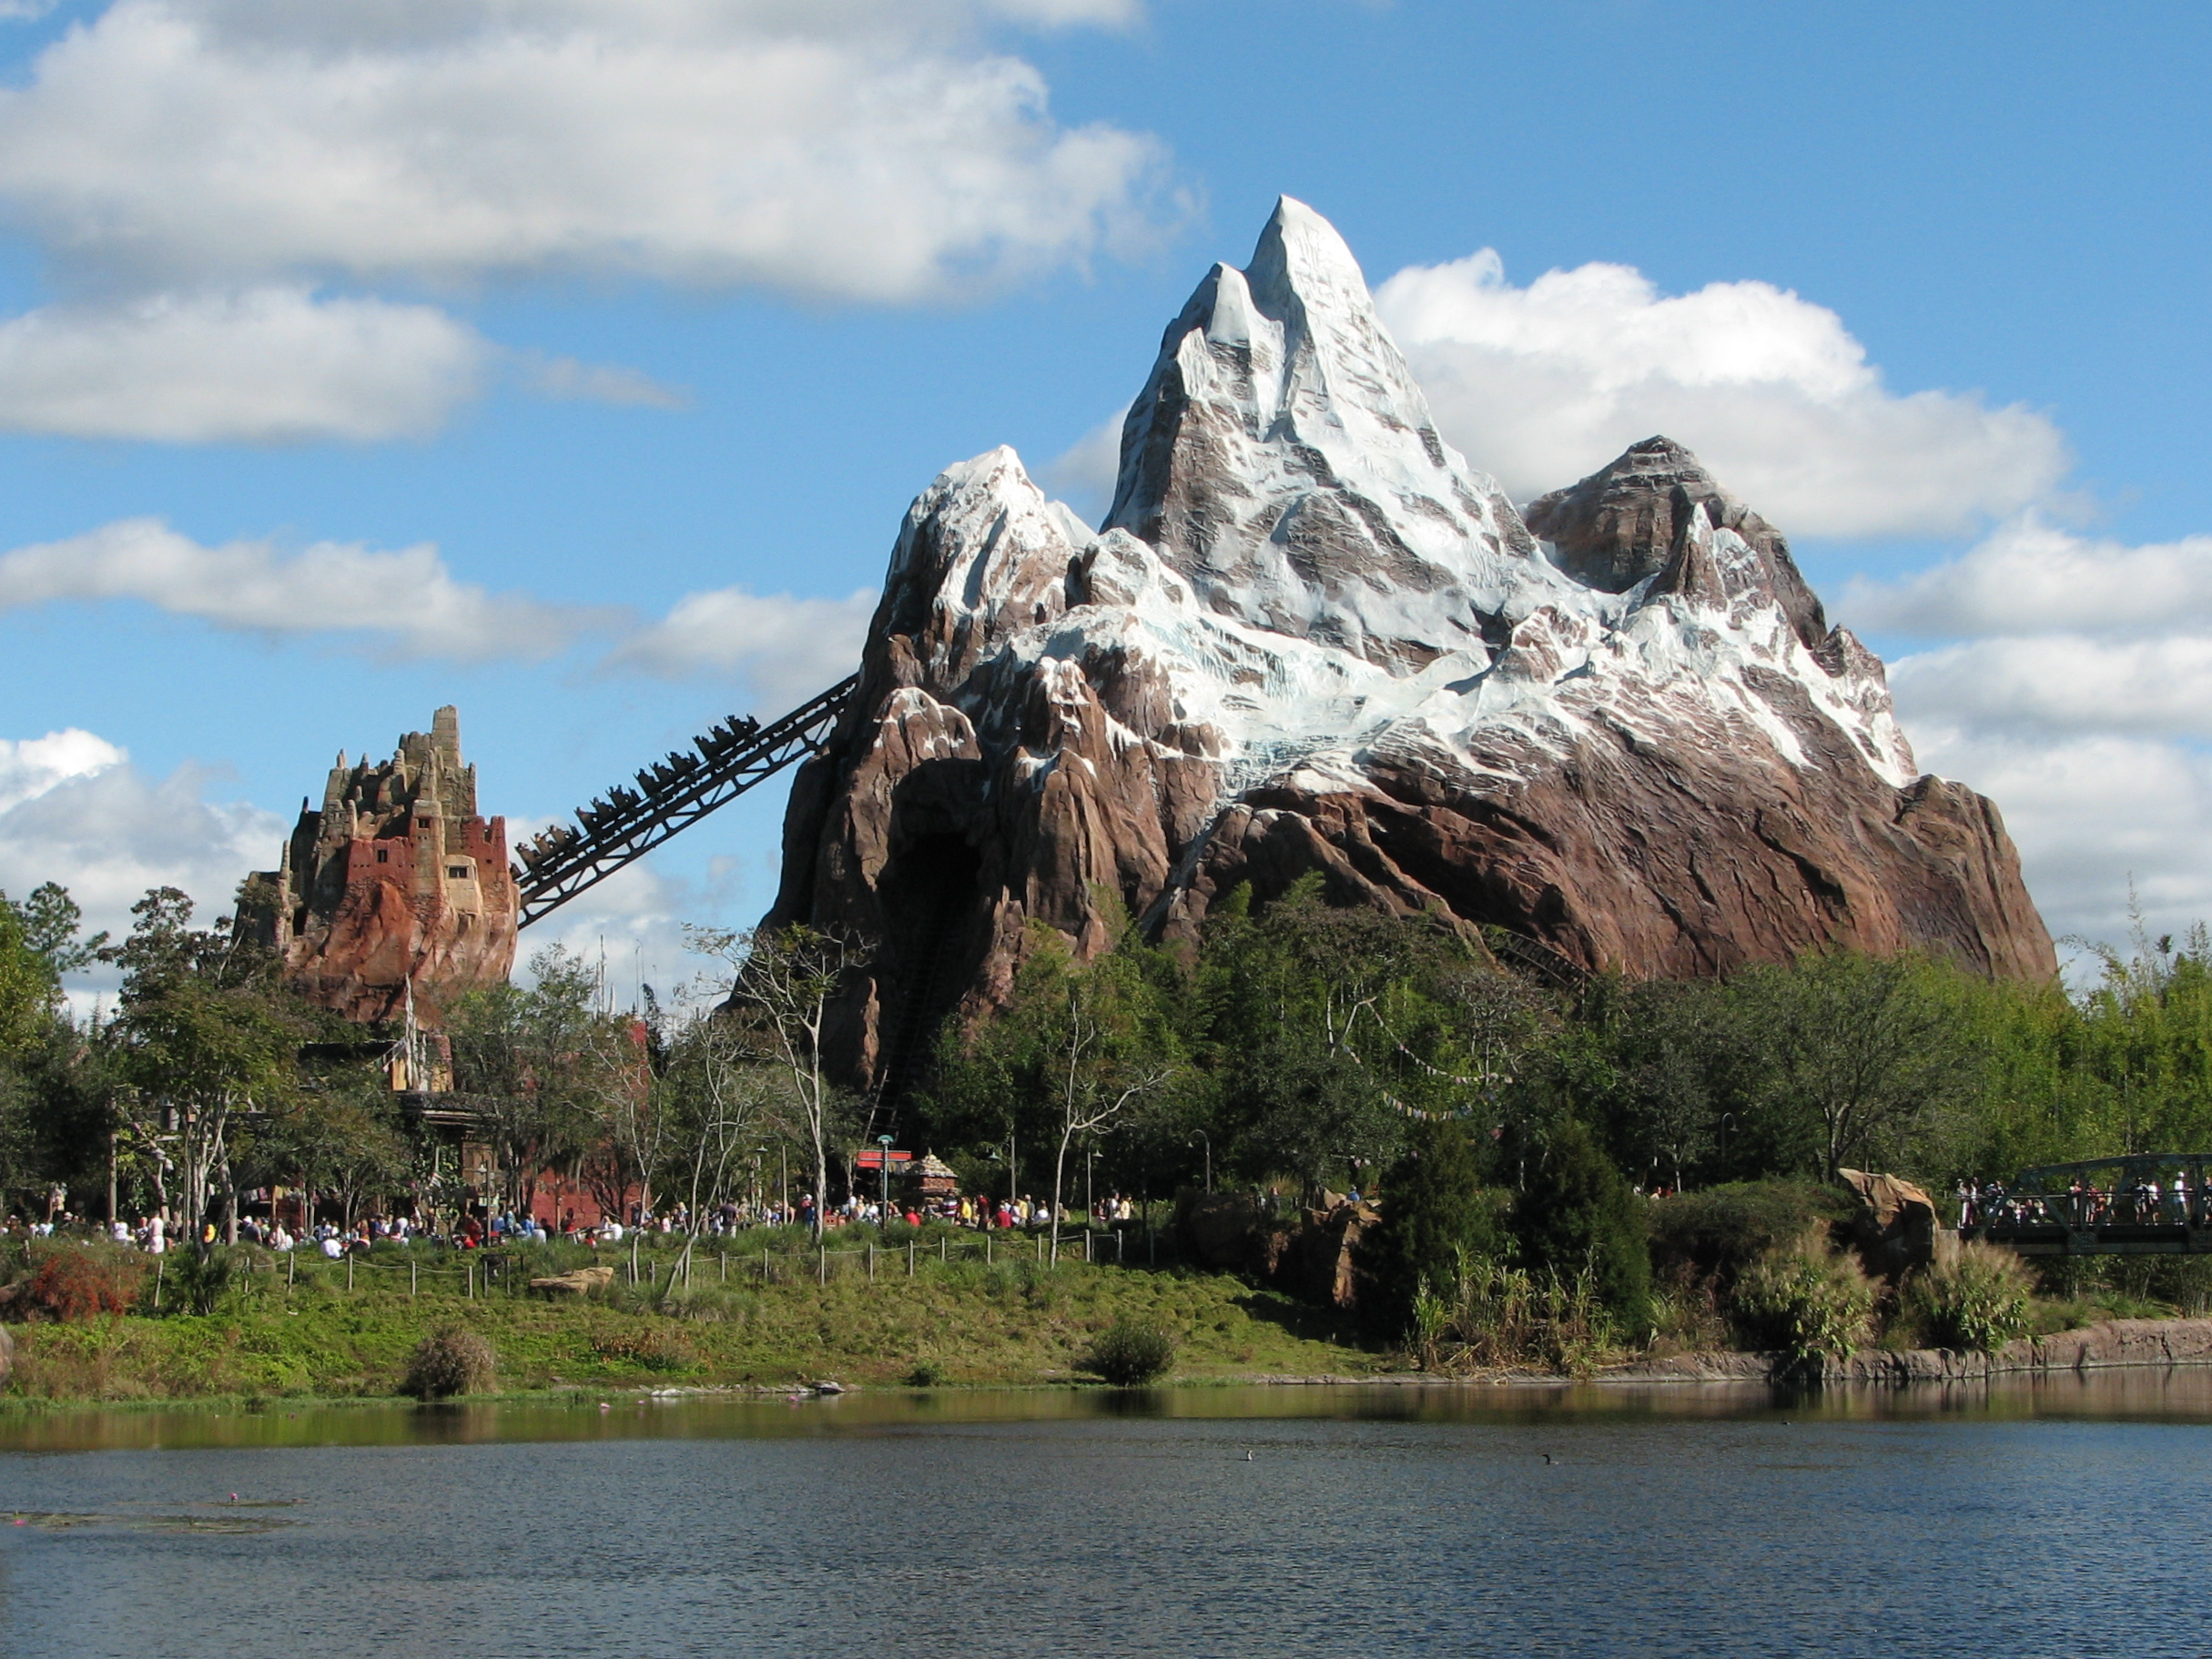 how tall is expedition everest